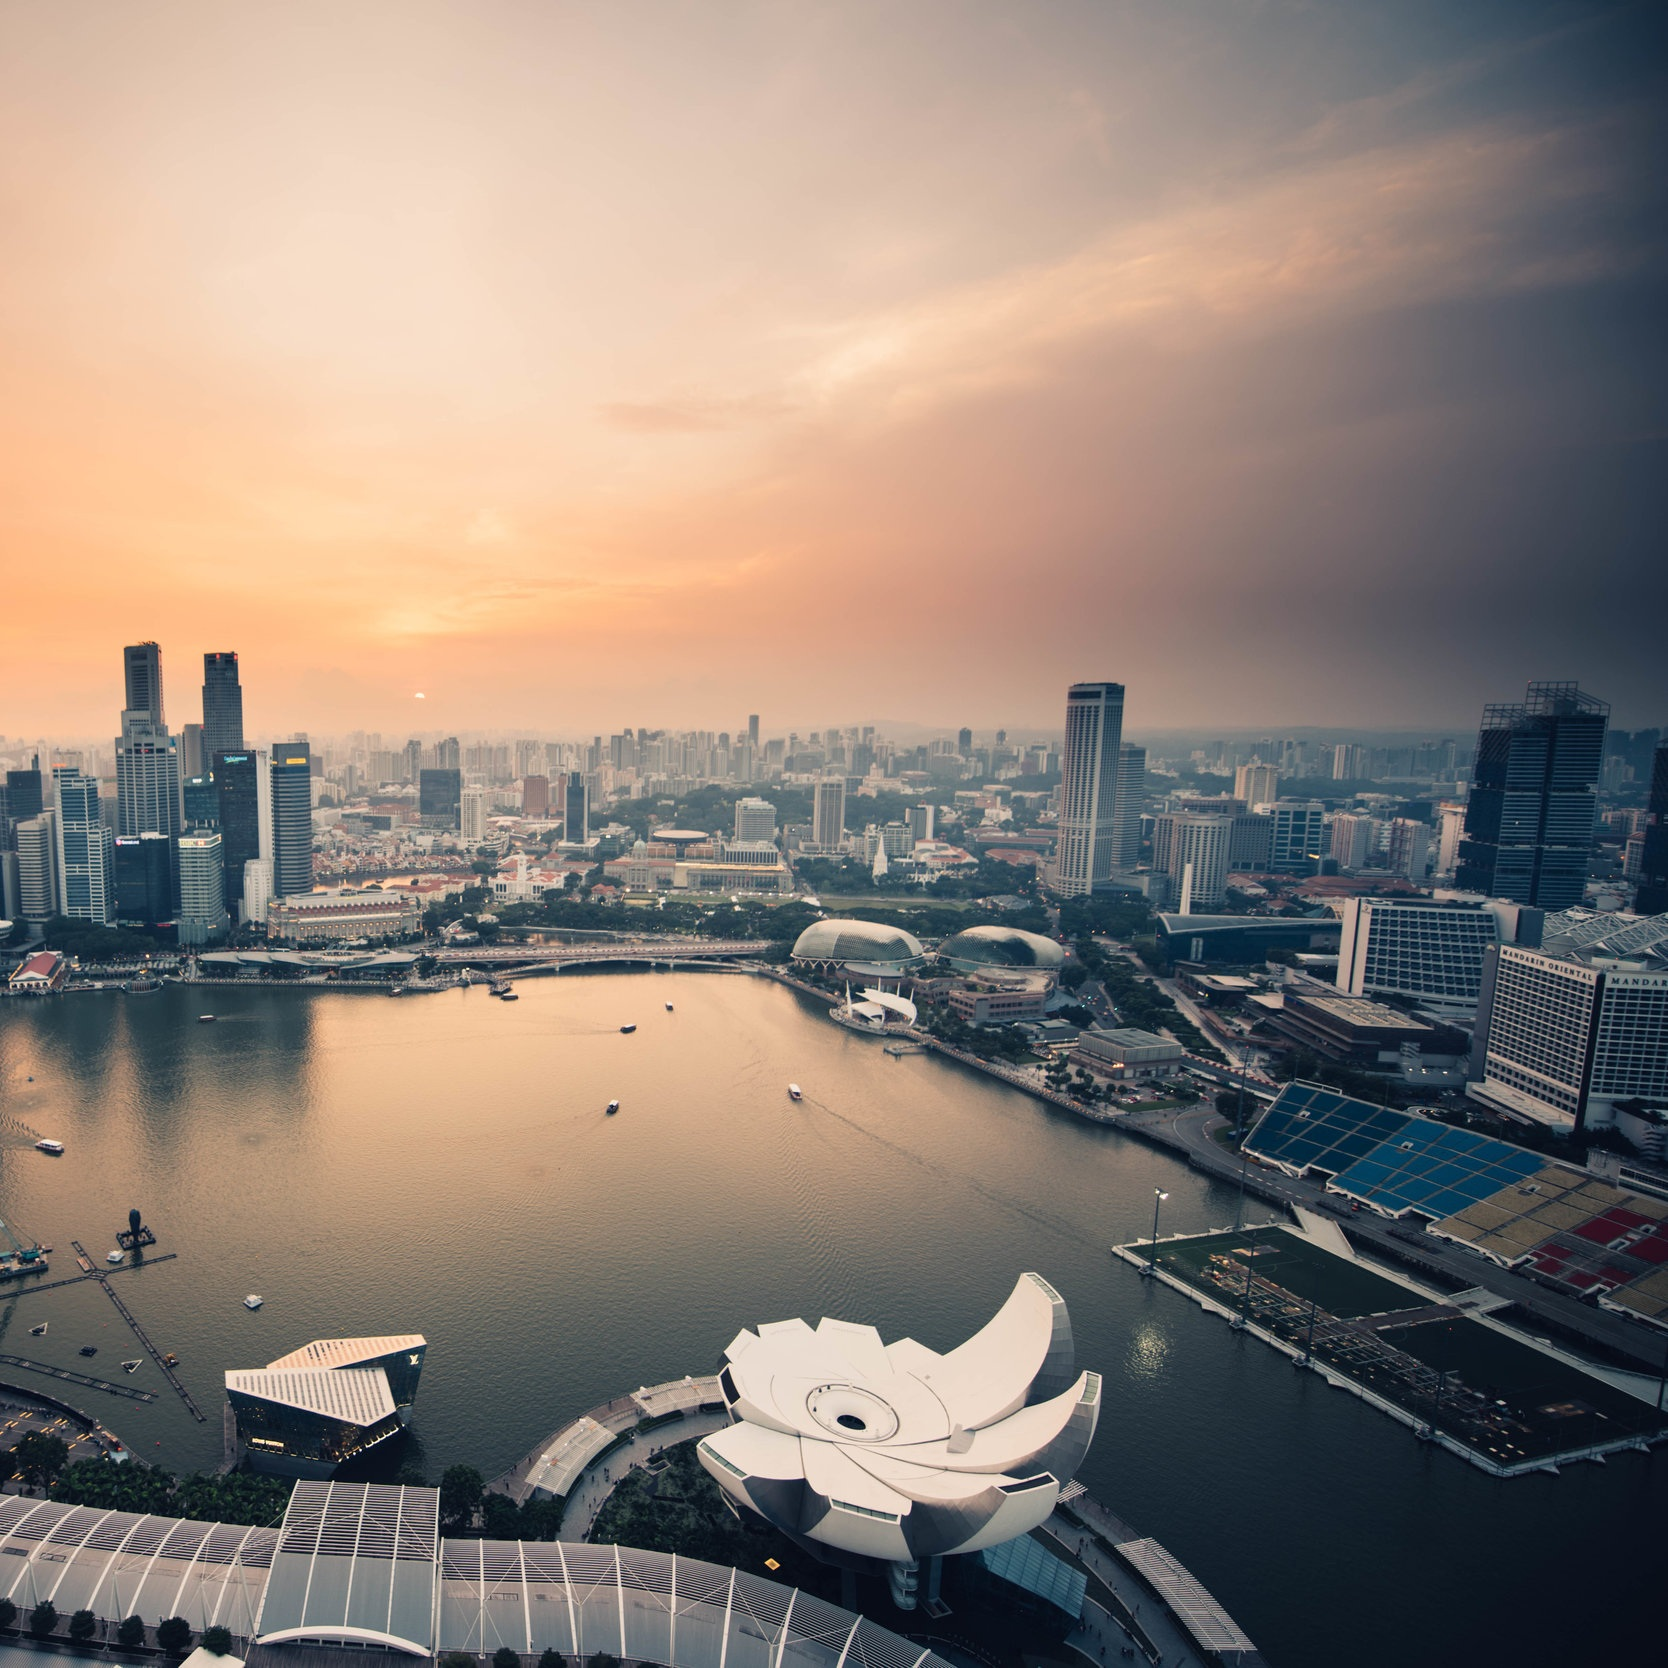 NOVEMBER 13, 2017singapore - US IMMIGRATION BY INVESTMENT (EB-5) SEMINAR